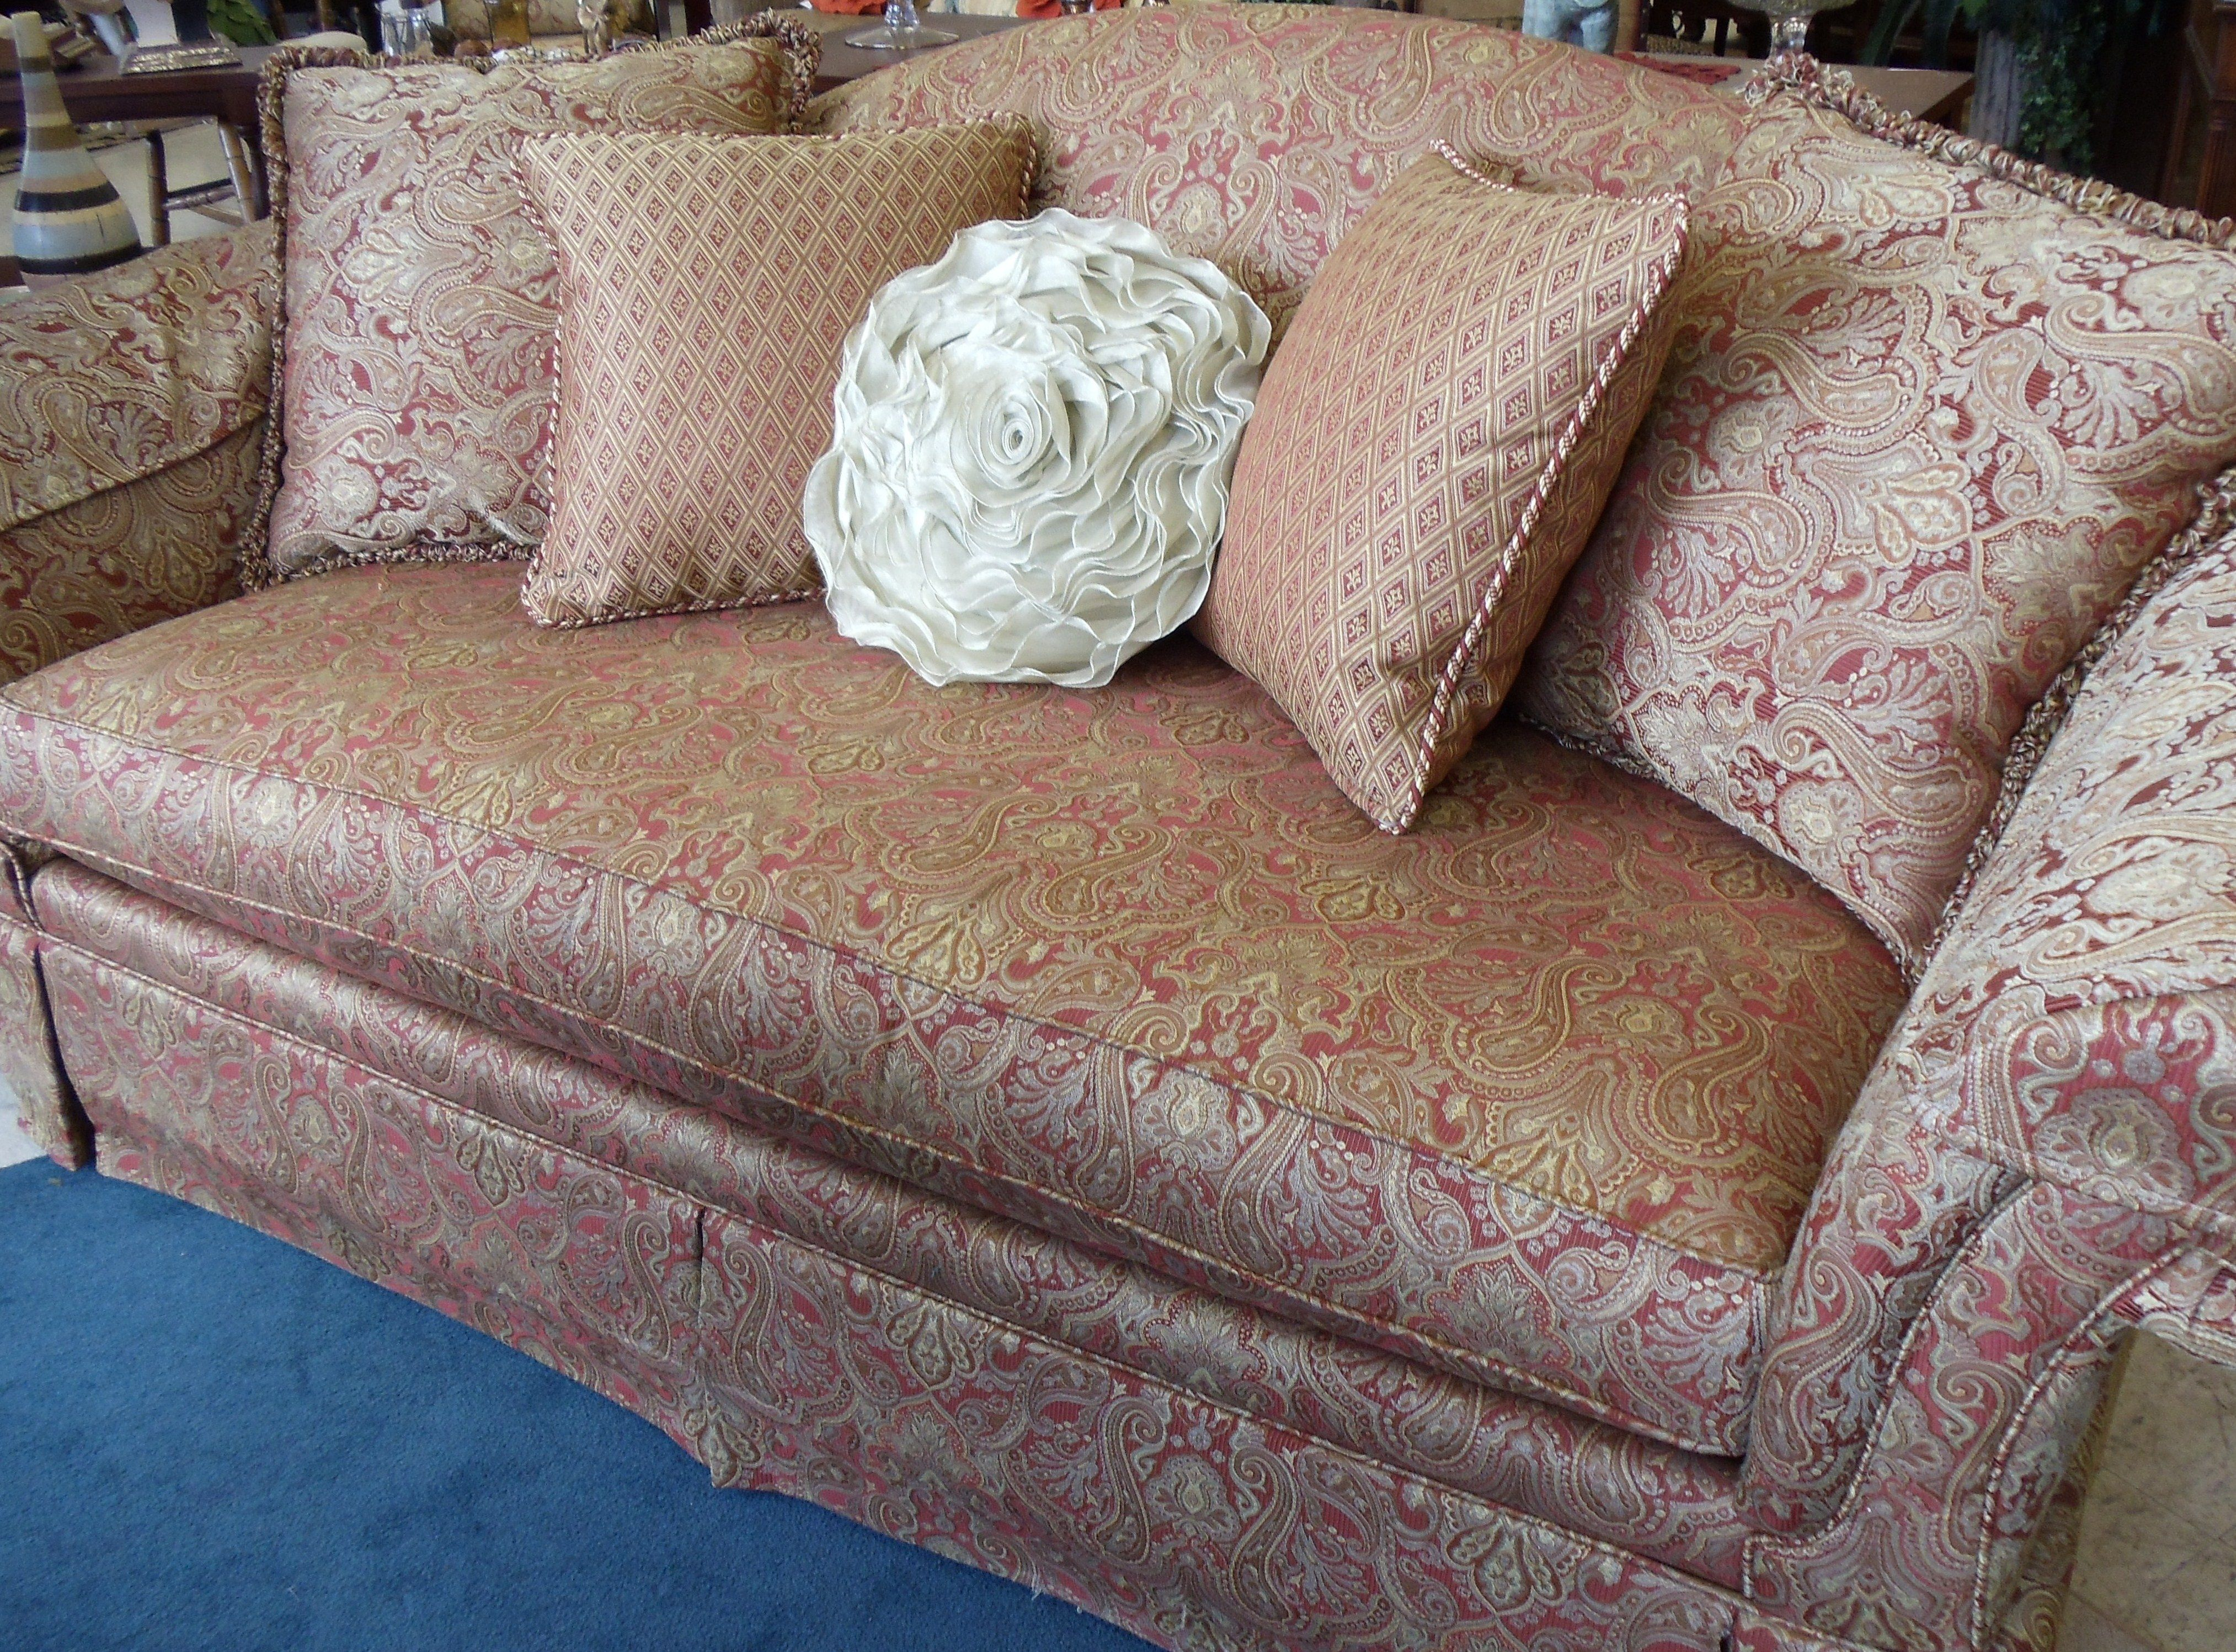 Reddish orange and gold Paisley print couch from Bassett